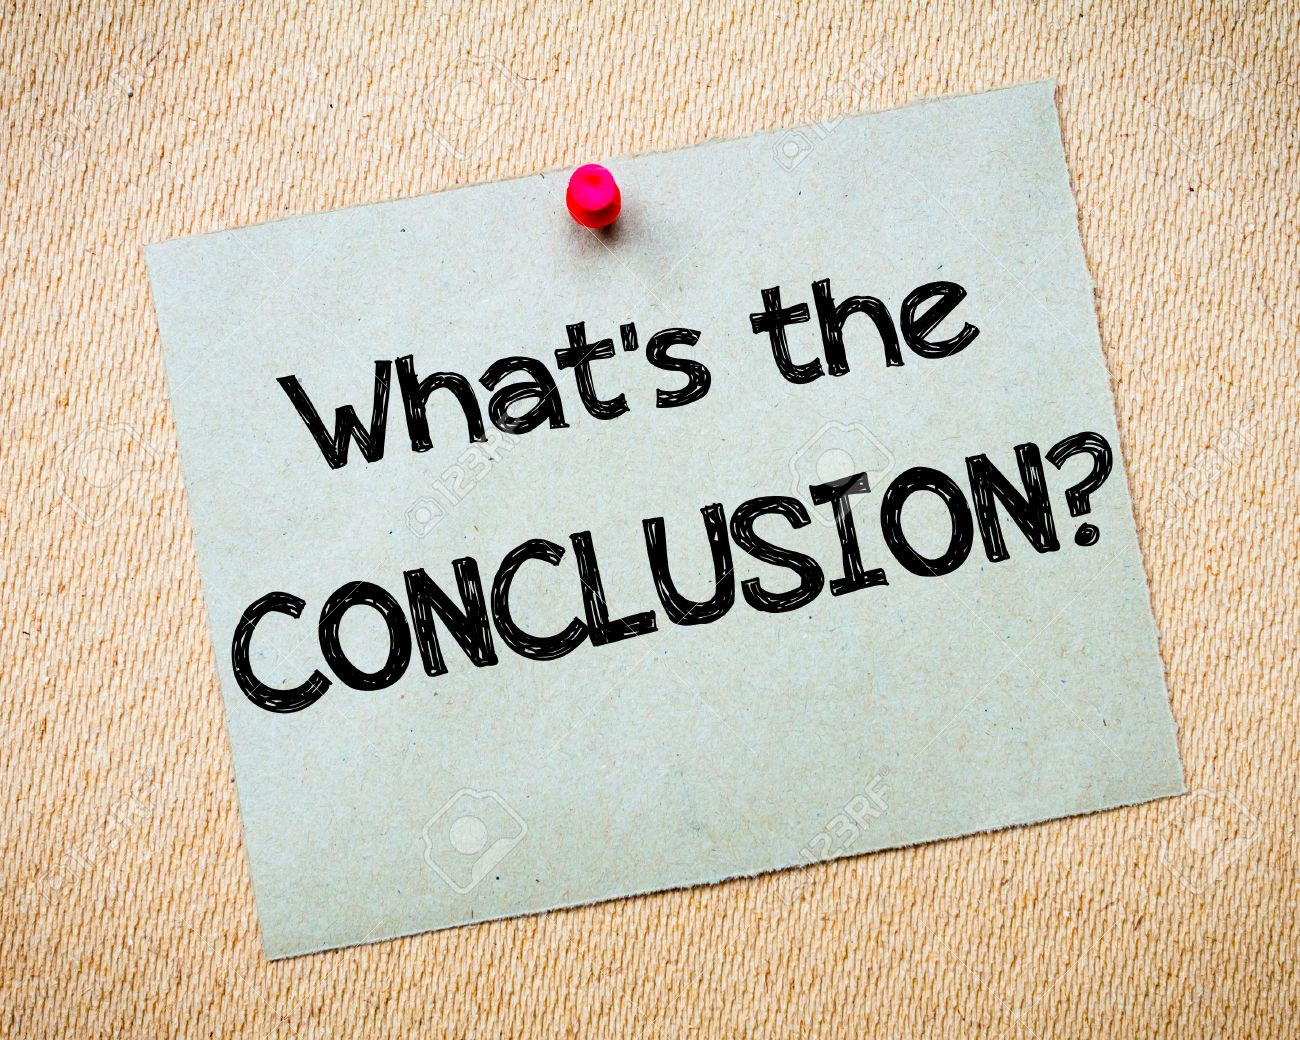 Whats a conclusion